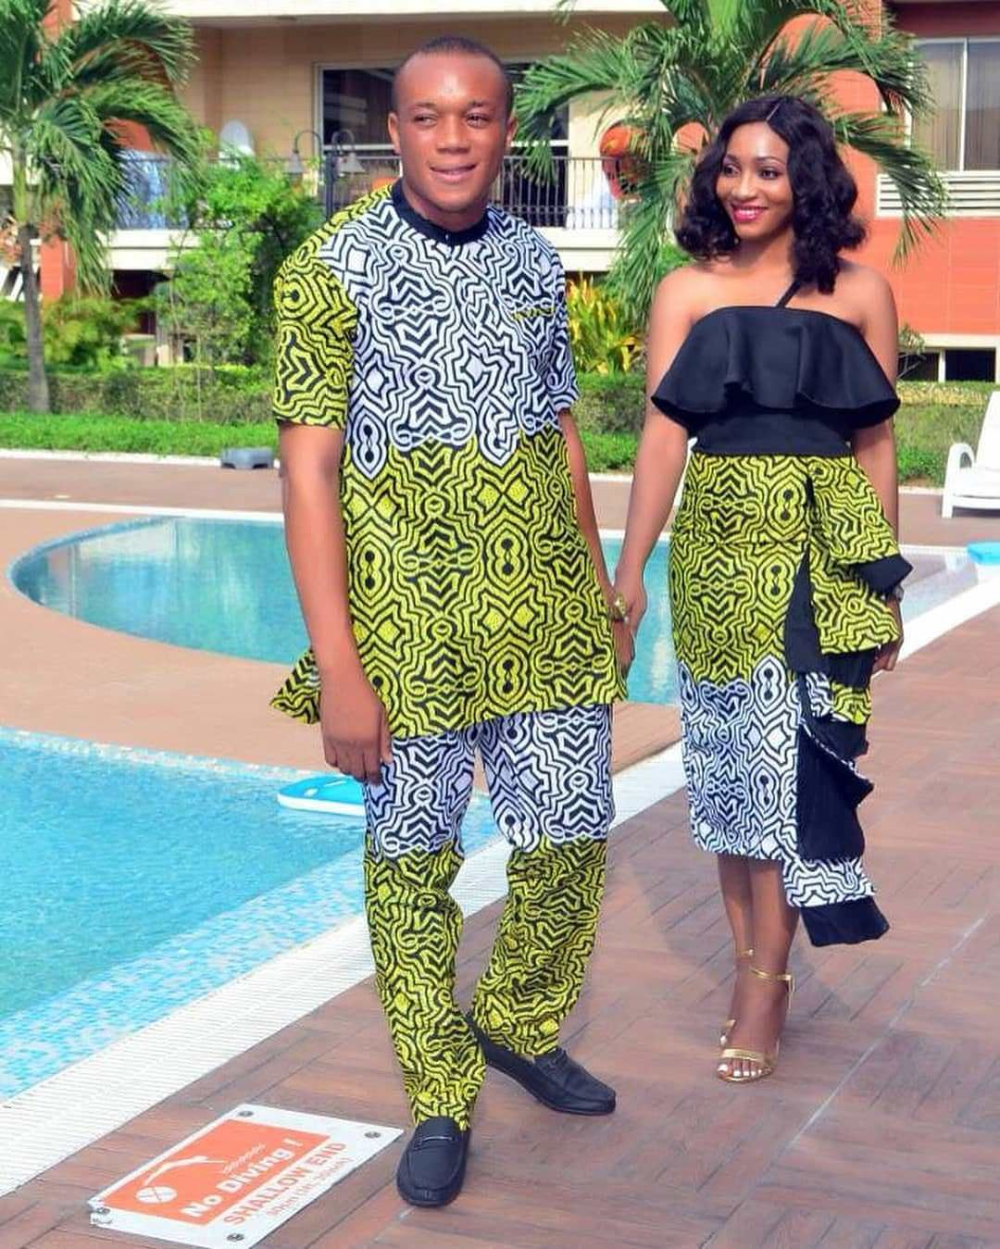 ankara couple outfit - Google Search #afrikanischerdruck ankara couple outfit - Google Search #afrikanischerdruck